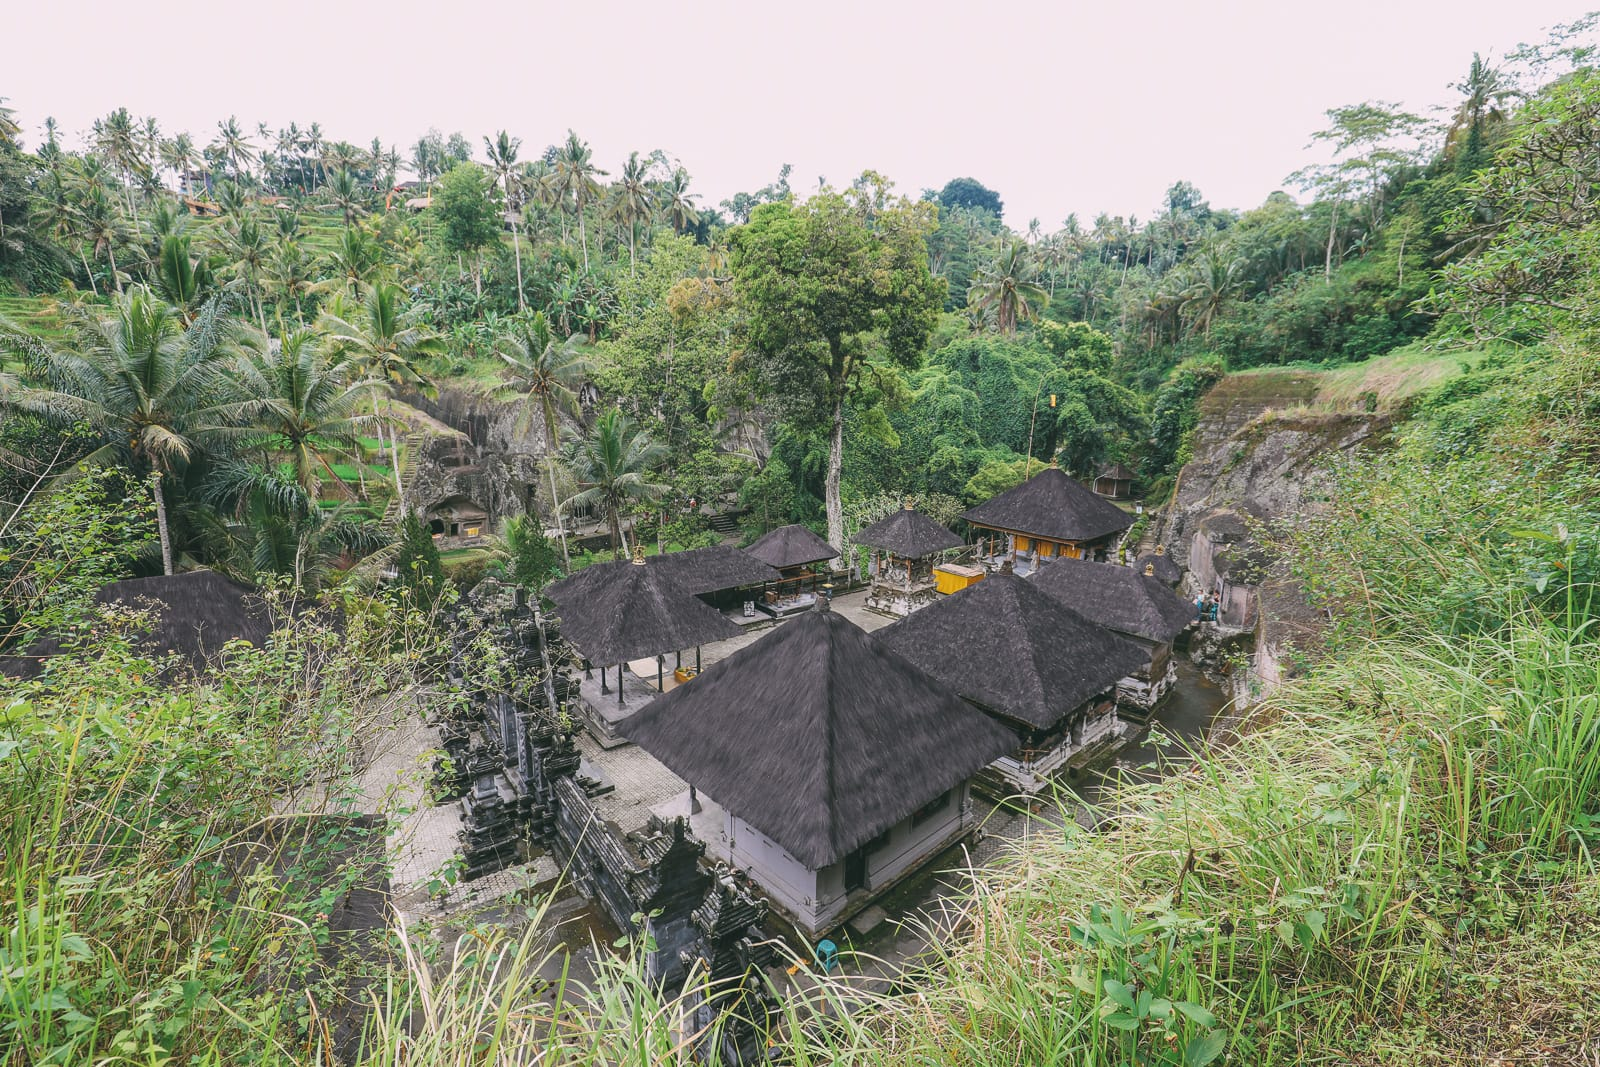 Bali Travel - Tegalalang Rice Terrace In Ubud And Gunung Kawi Temple (43)